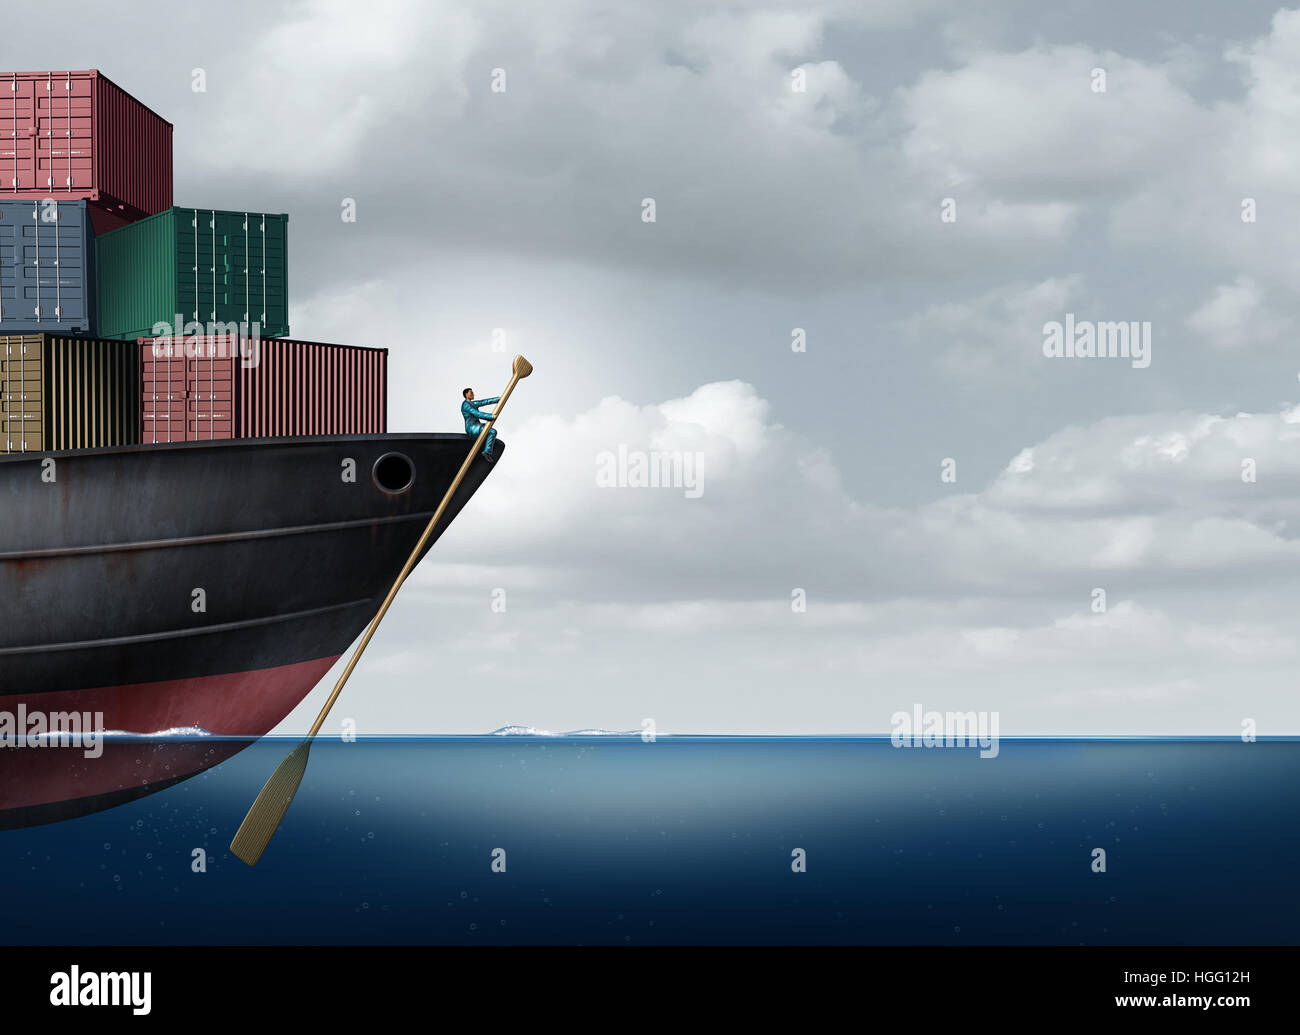 Shipping cargo leadership as a businessman or logistics manager navigatying a freight ship using an oar as an import - Stock Image